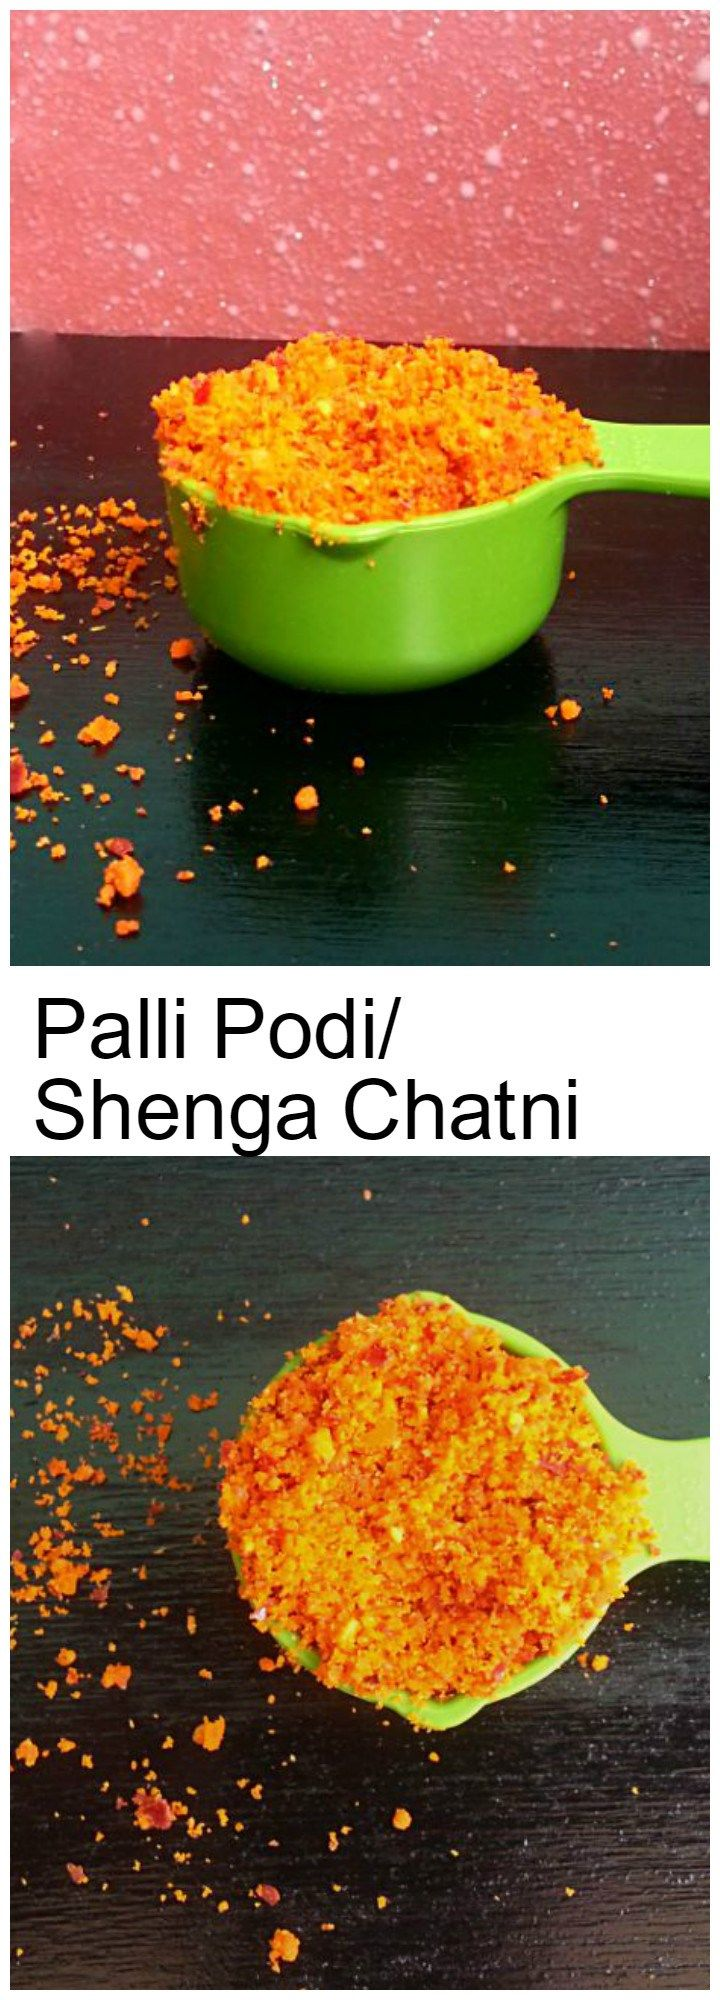 Palli Podi Andhra Style: Dry roasted and peeled peanut combined with other spices to make a tasty powder. It's anytime edible with roti/bhakri and rice.